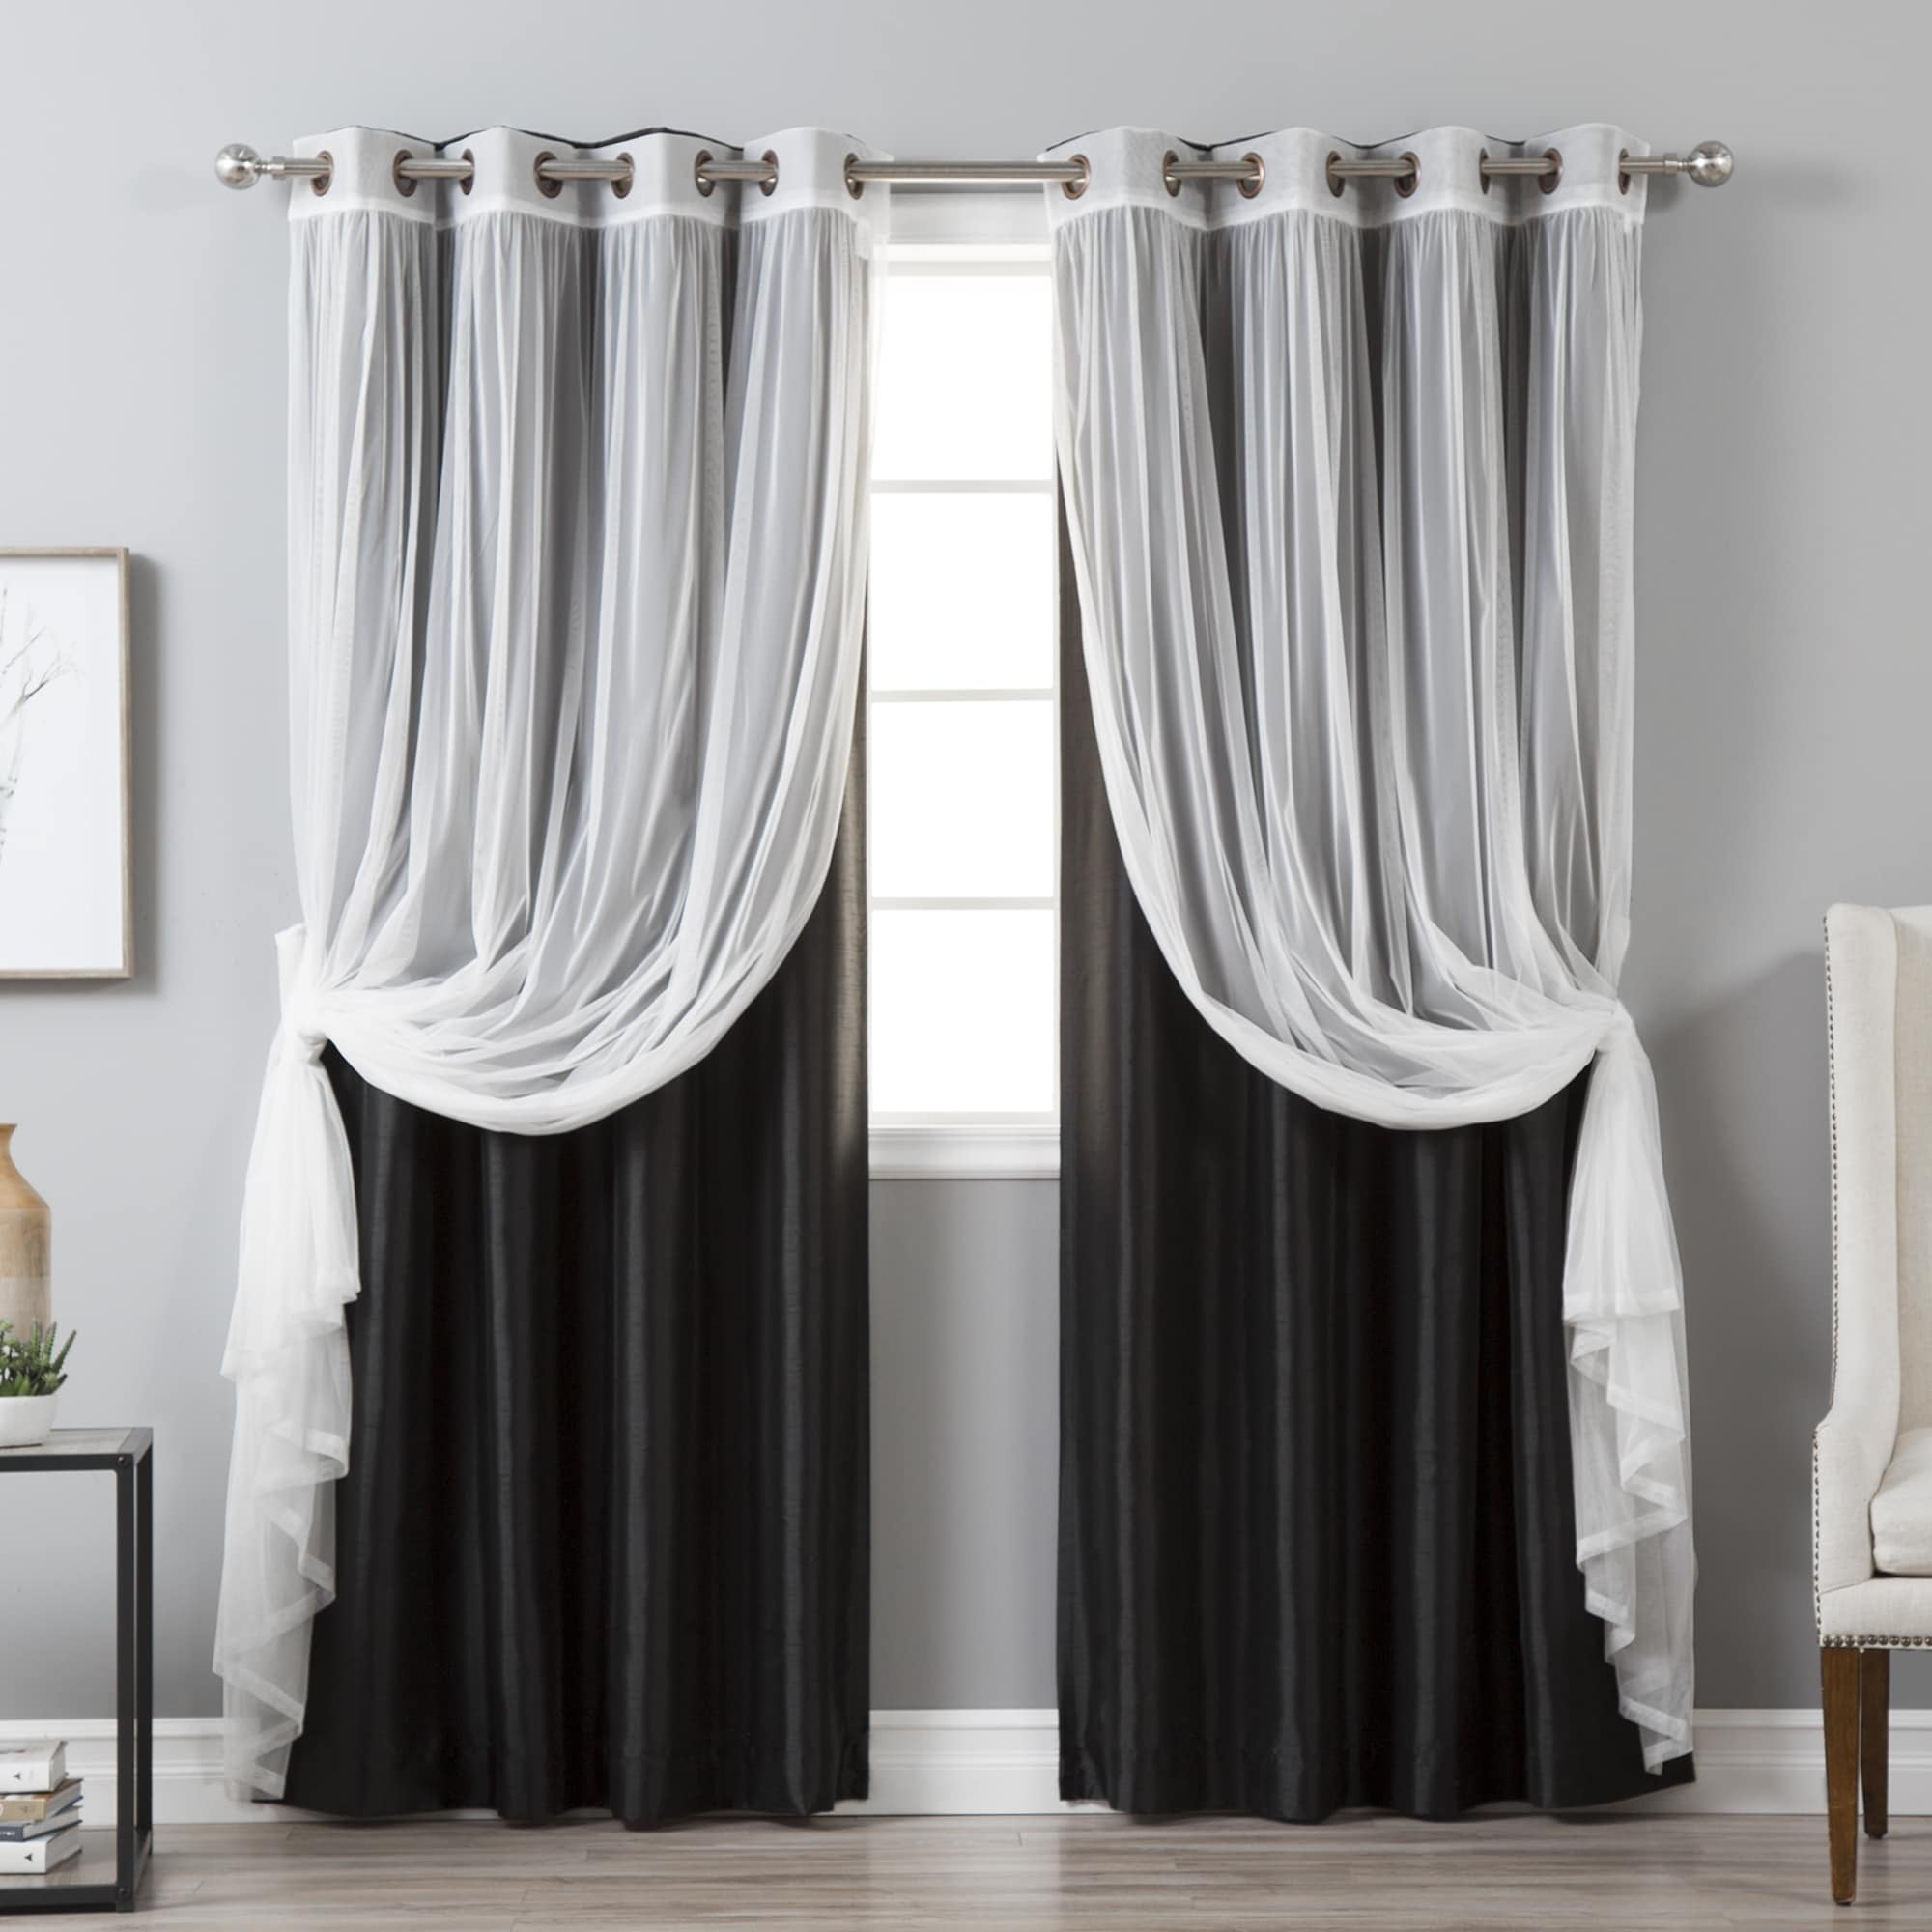 Details About Aurora Home Mix & Match Faux Silk Blackout Tulle Sheer 4 In Tulle Sheer With Attached Valance And Blackout 4 Piece Curtain Panel Pairs (View 9 of 30)